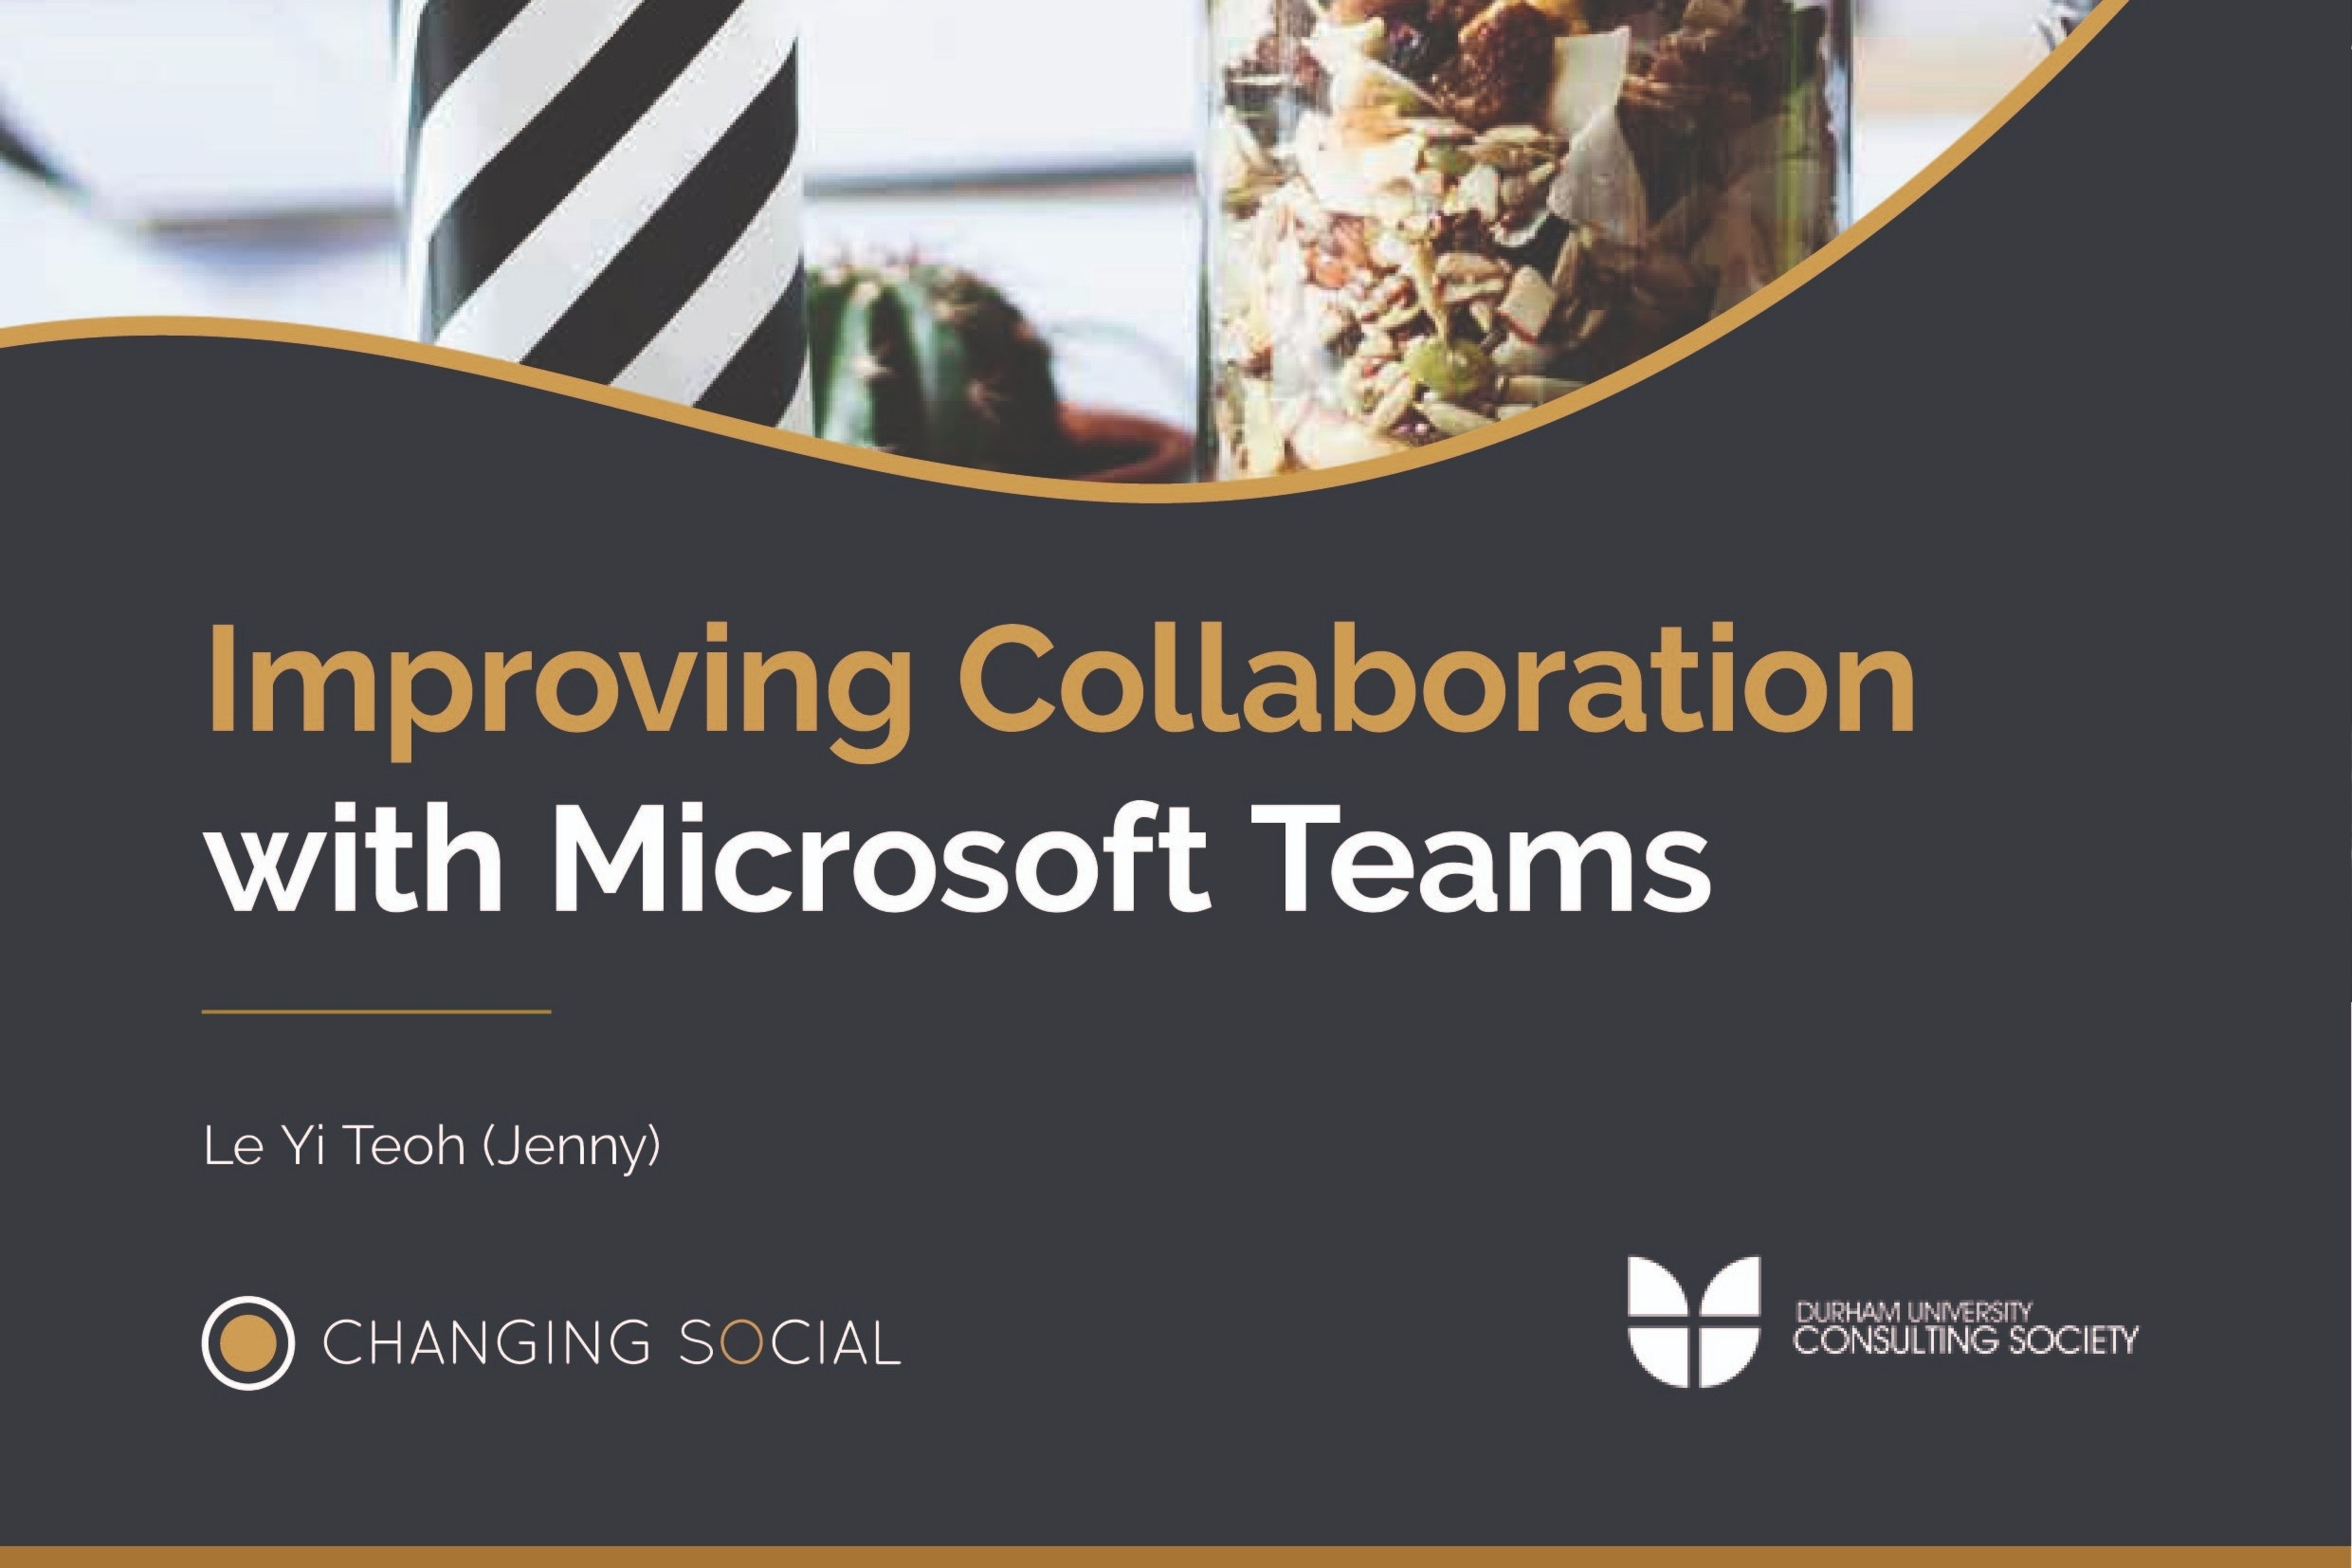 Improving%252Bcollaboration%252Bwith%252BMS%252Bteams%252B2-01.jpg